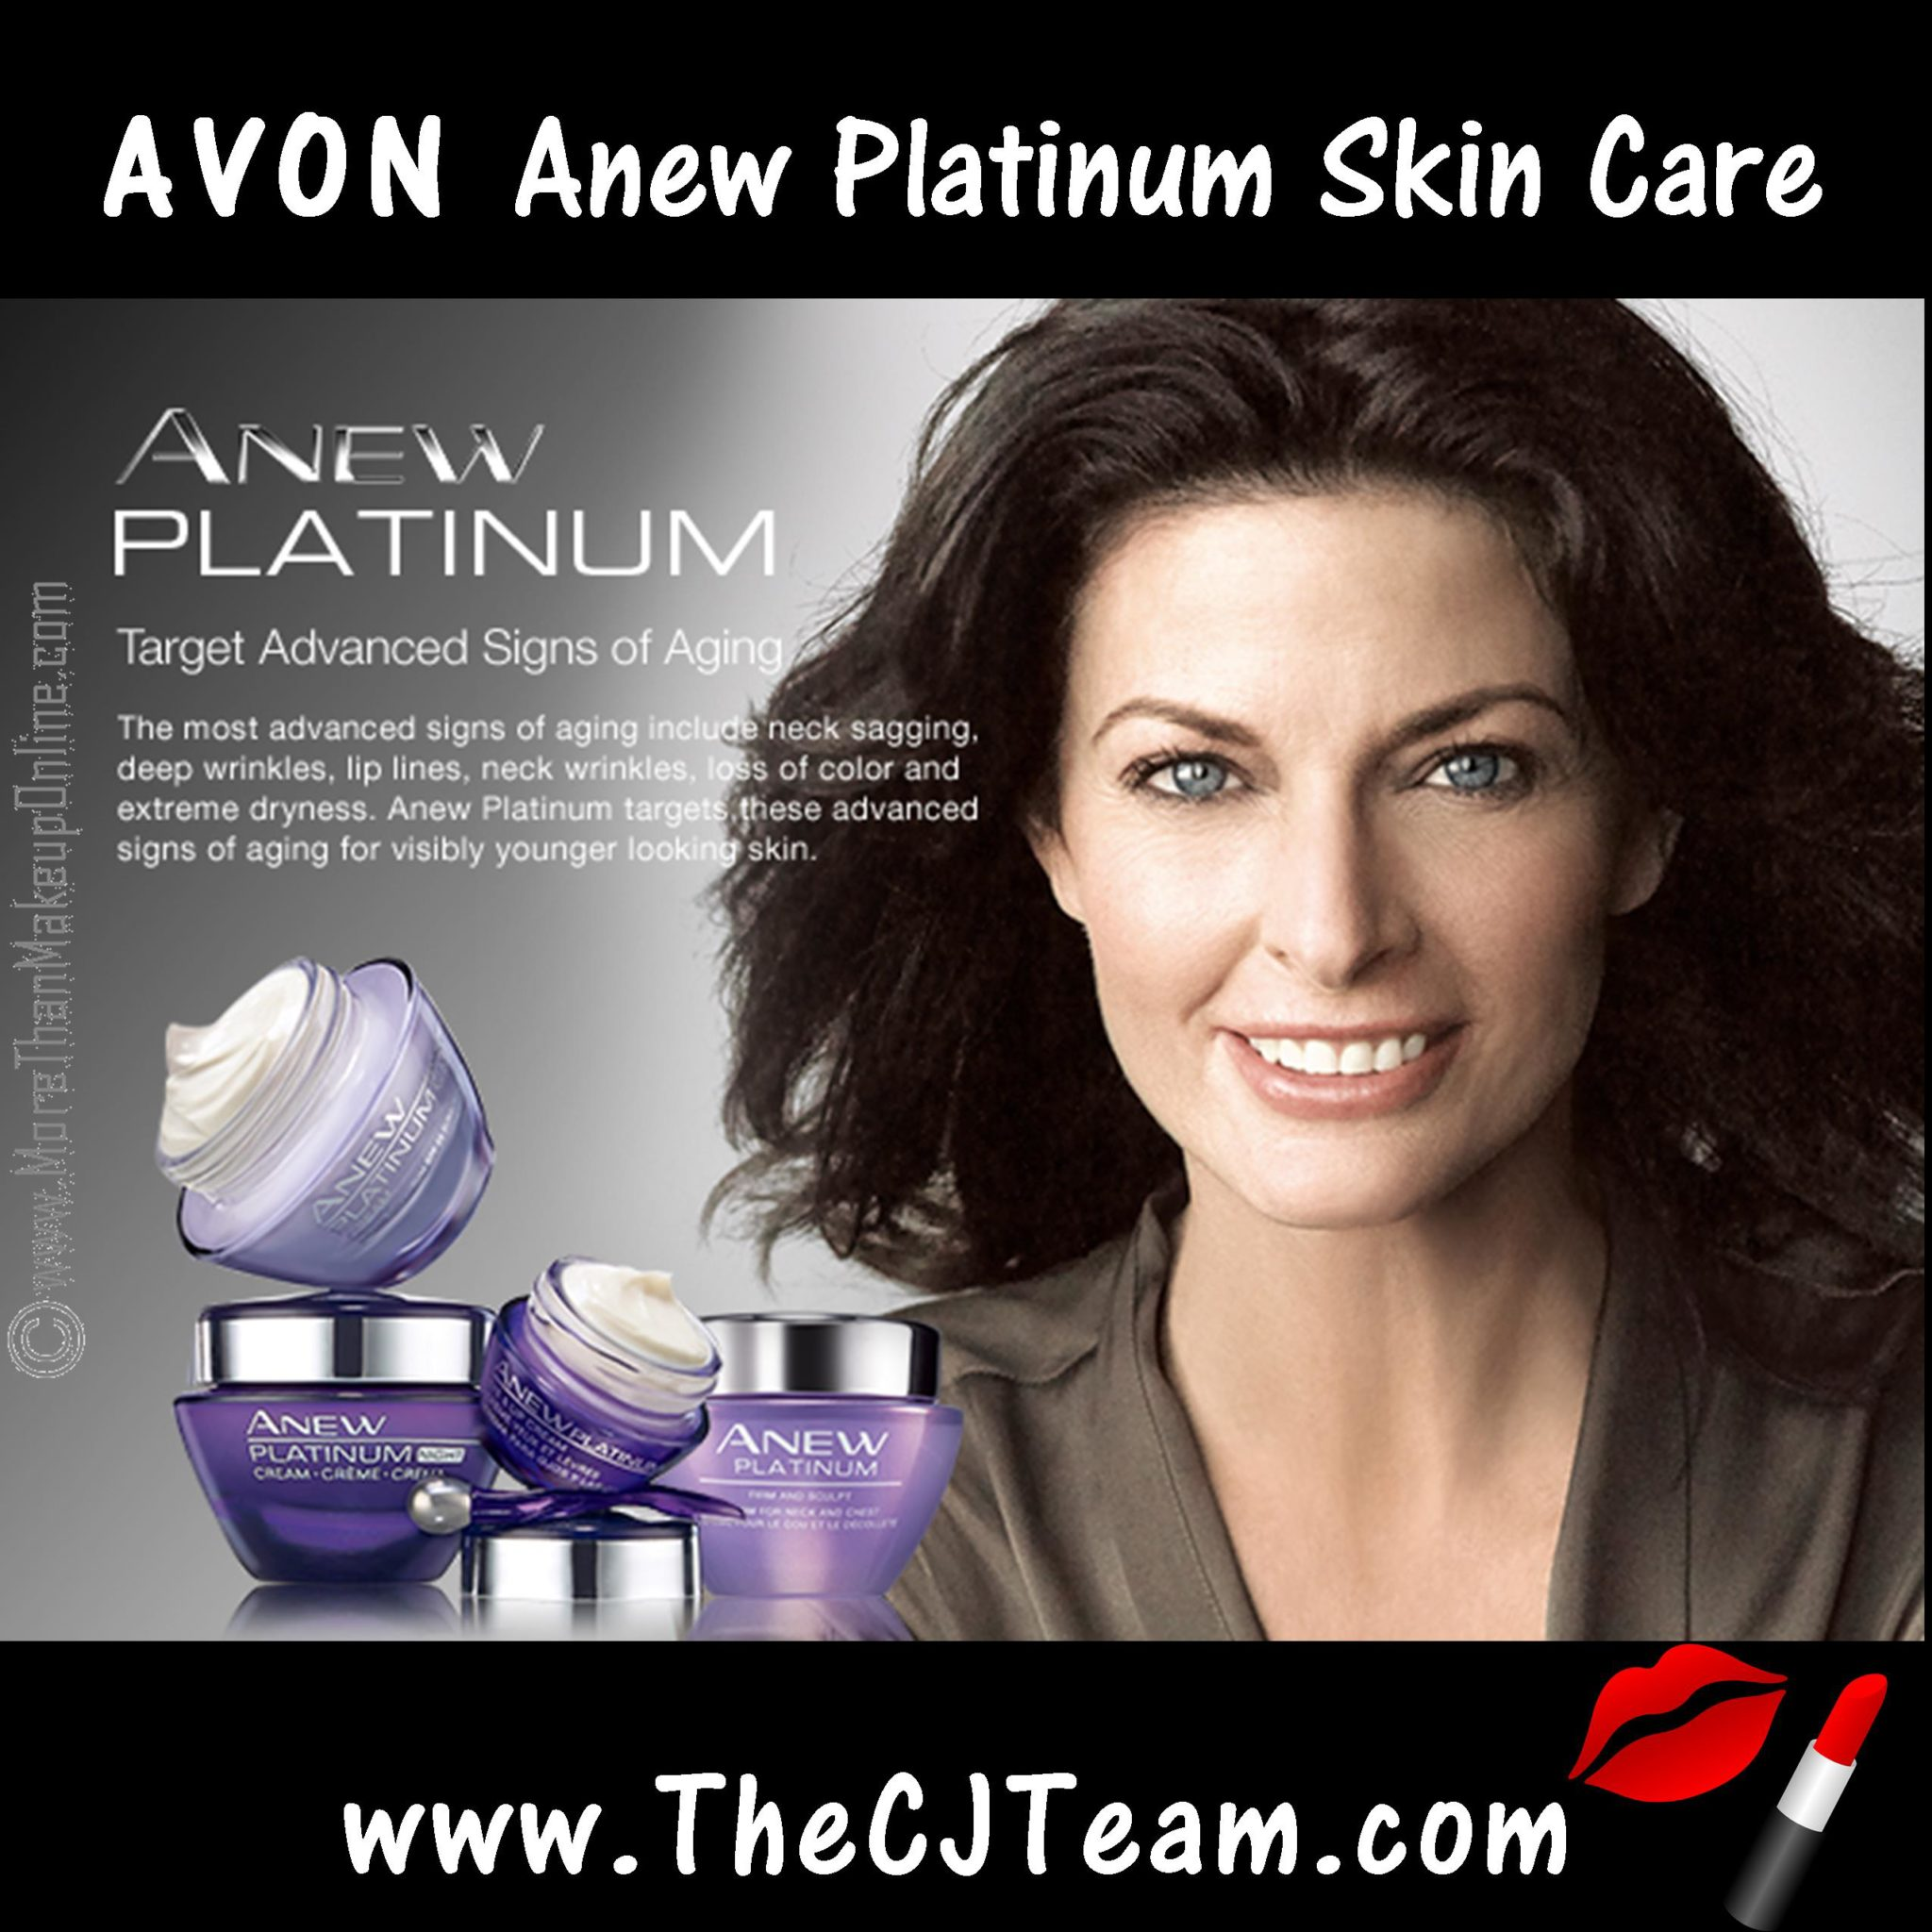 Platinum Skin Care Coupons. Last Update: November 17, Professional skin care products to treat acne, wrinkles, scarring and pigmentation with at .